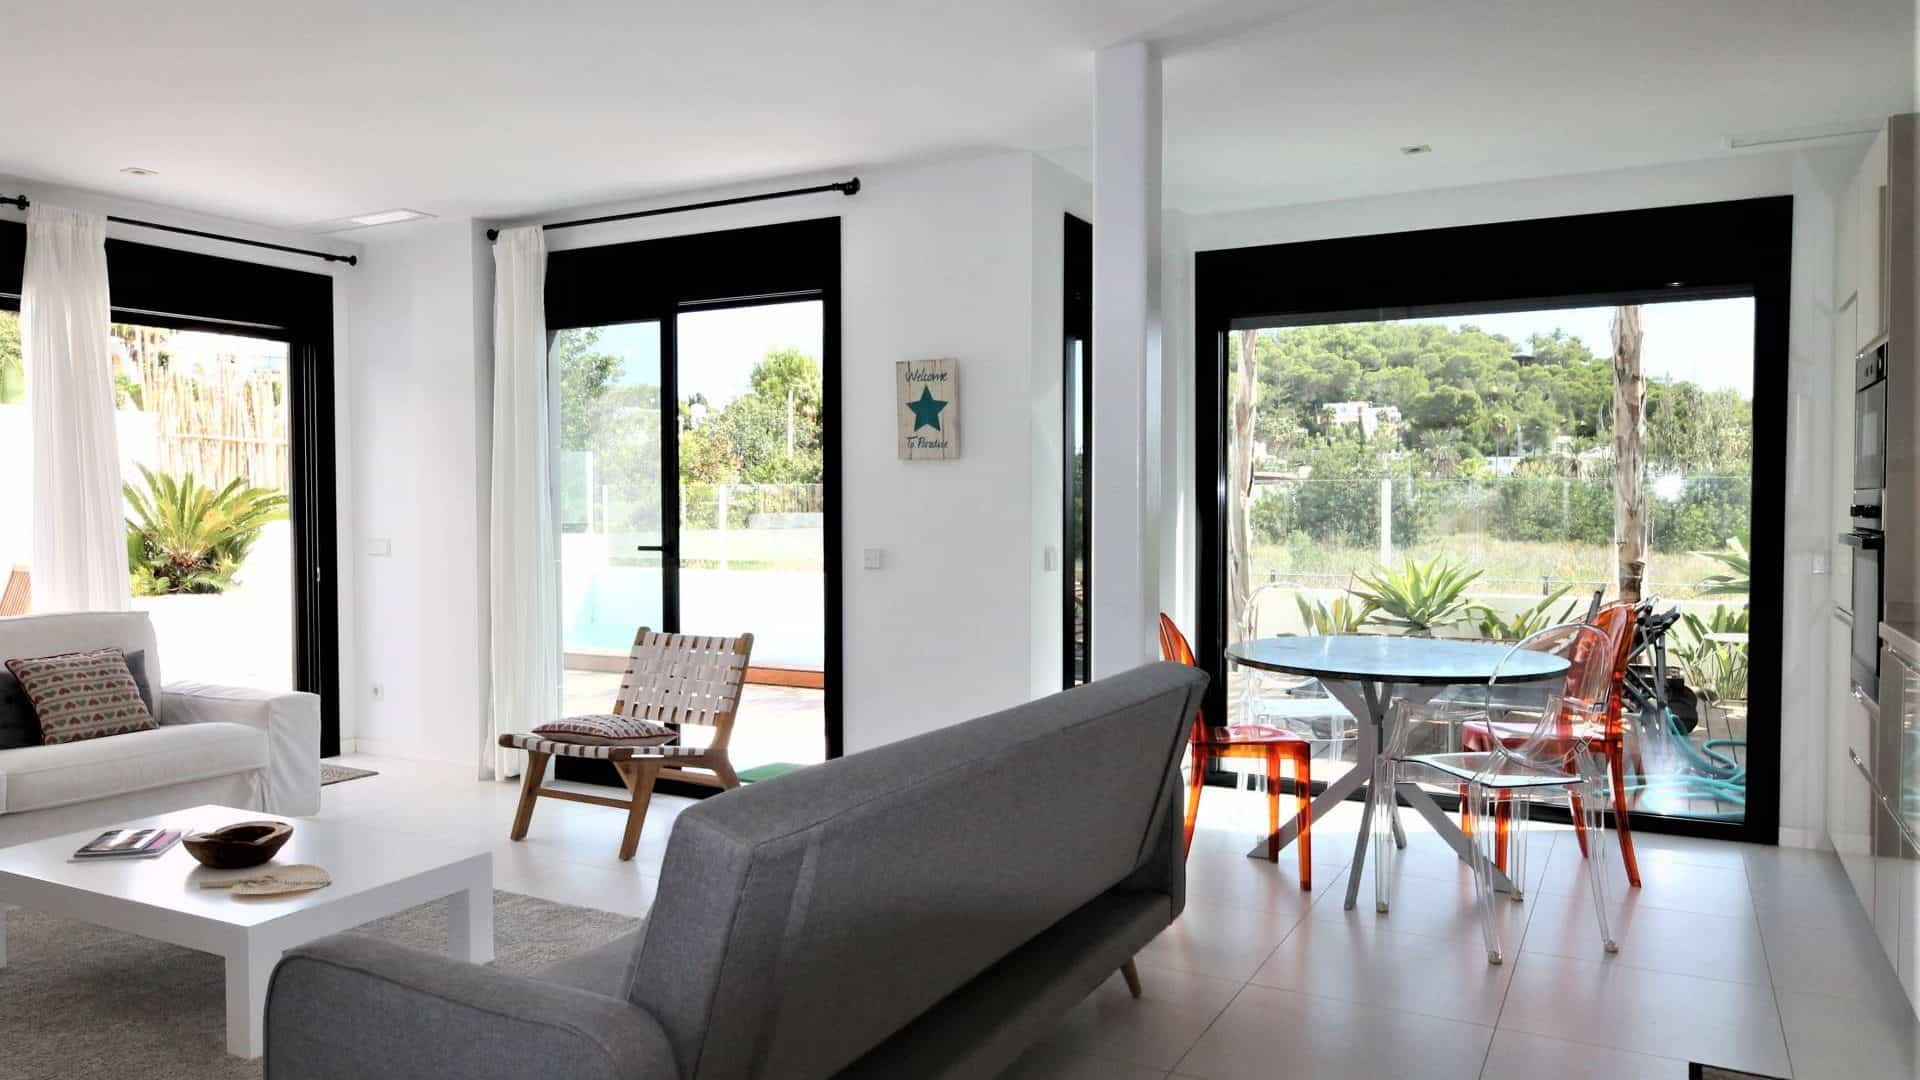 Ses Torres Talamanca new 2 bedroom apartment for sale